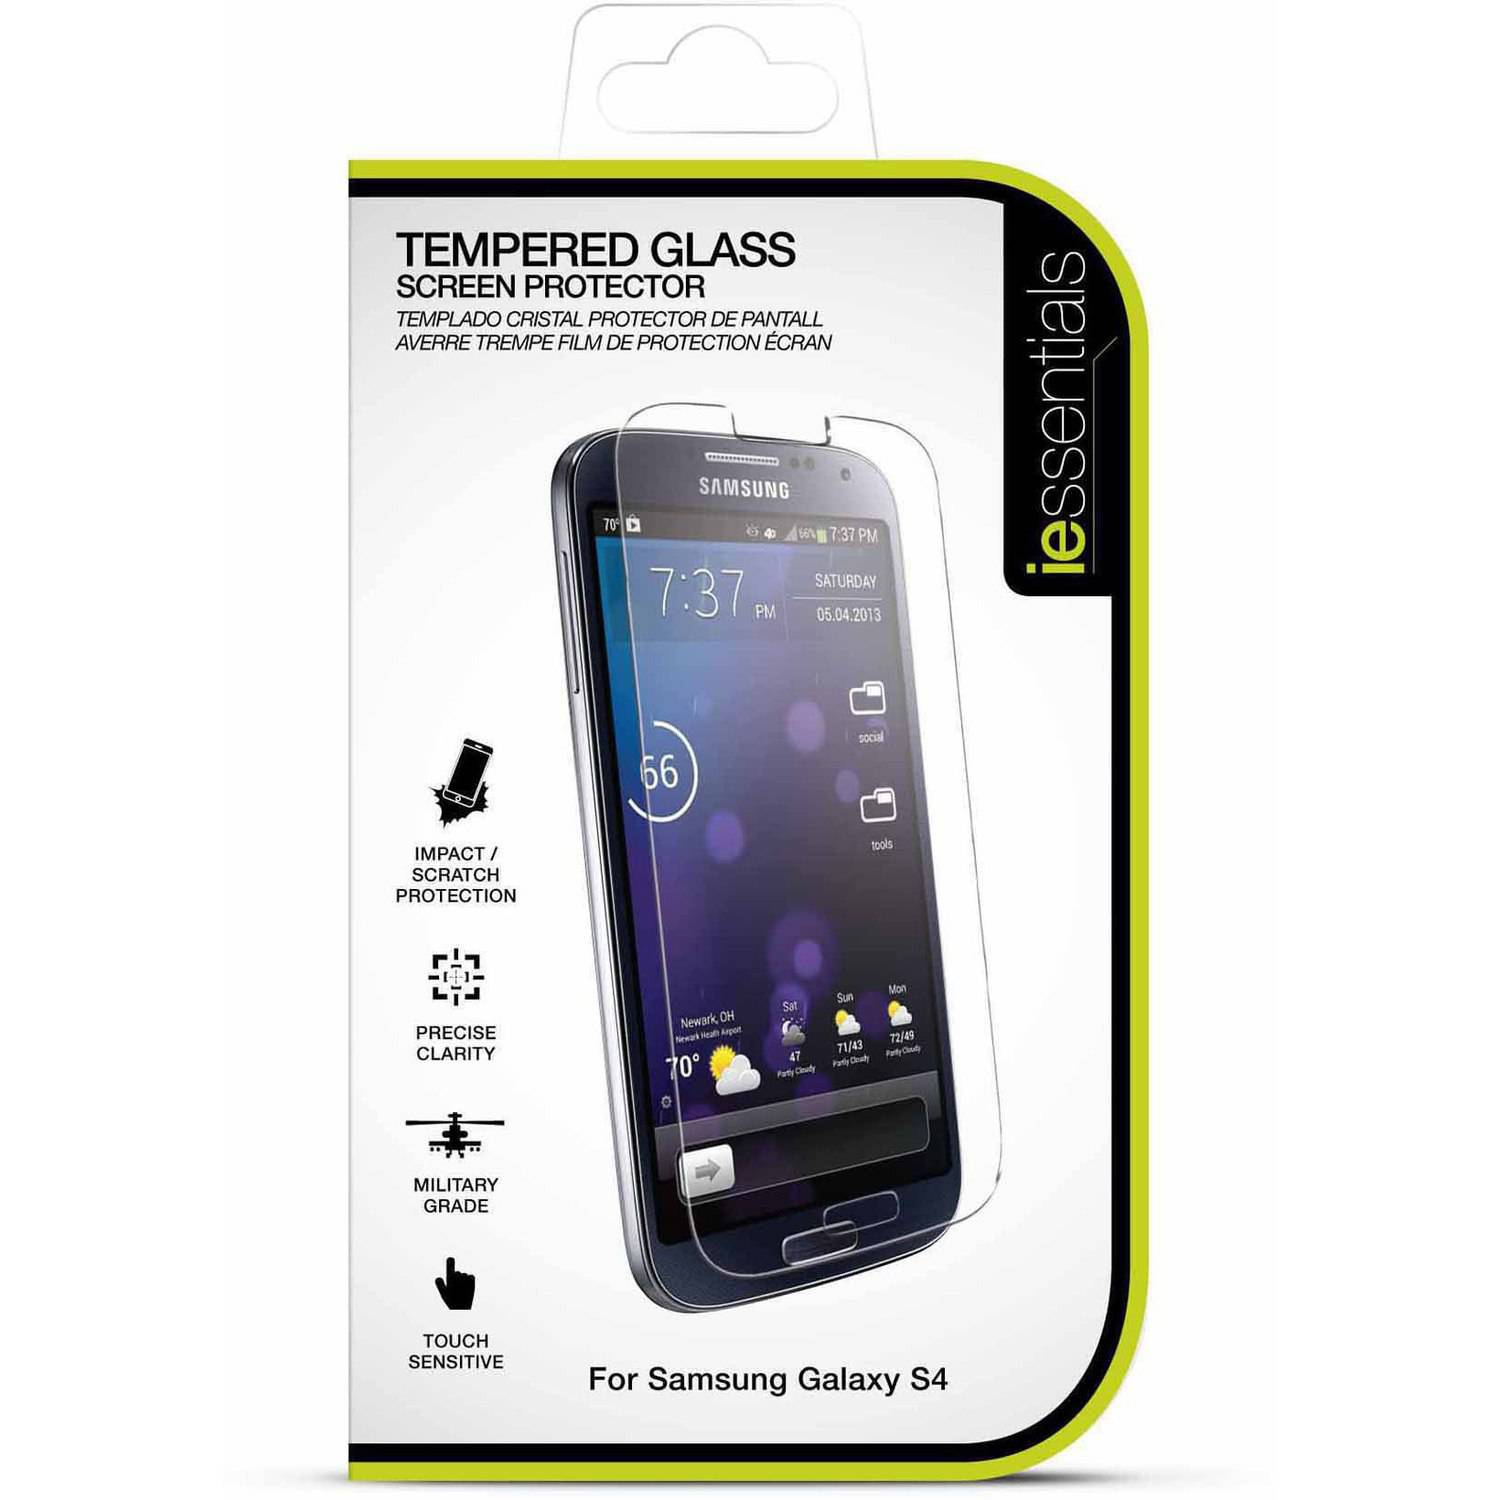 DigiPower Samsung Galaxy S4 Tempered Glass Screen Protector